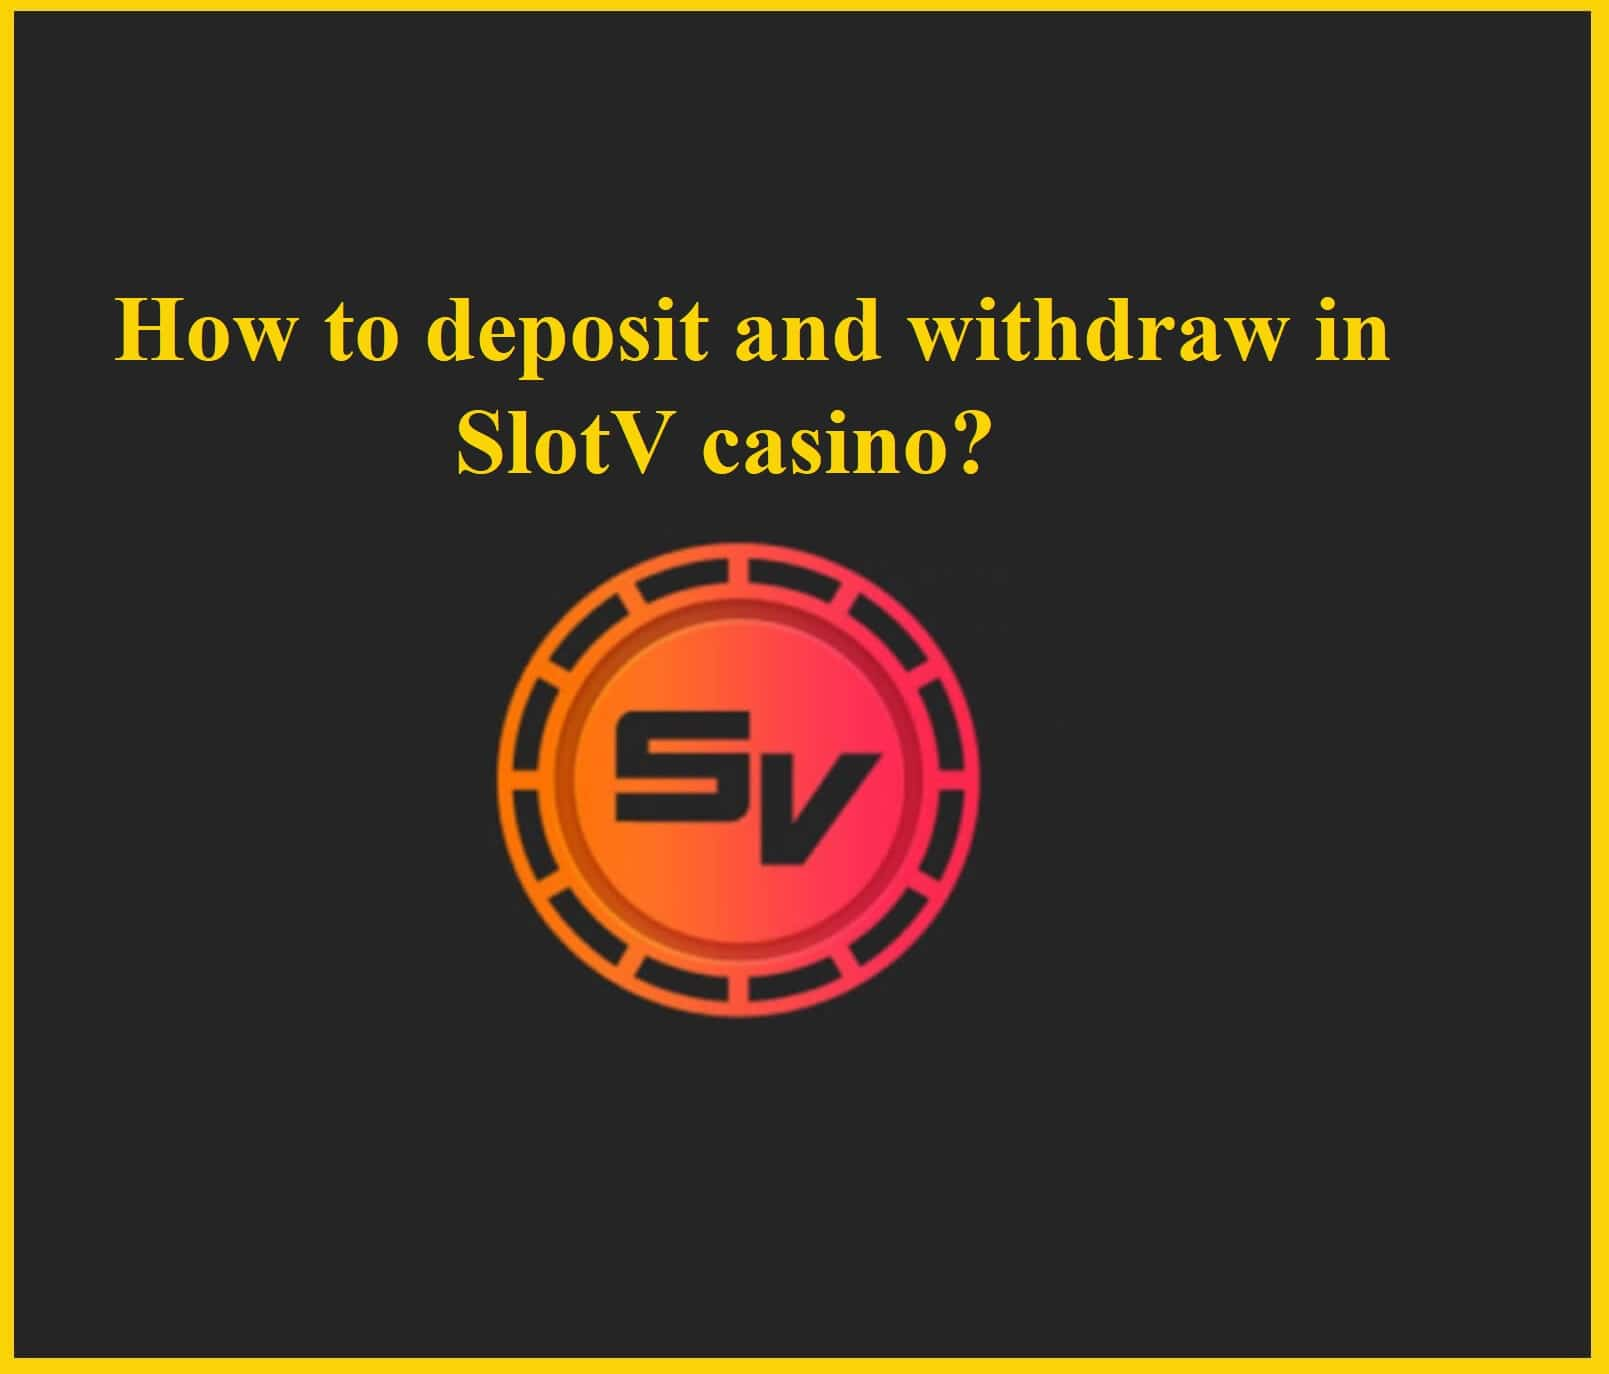 SlotV depositing and withdrawal of money